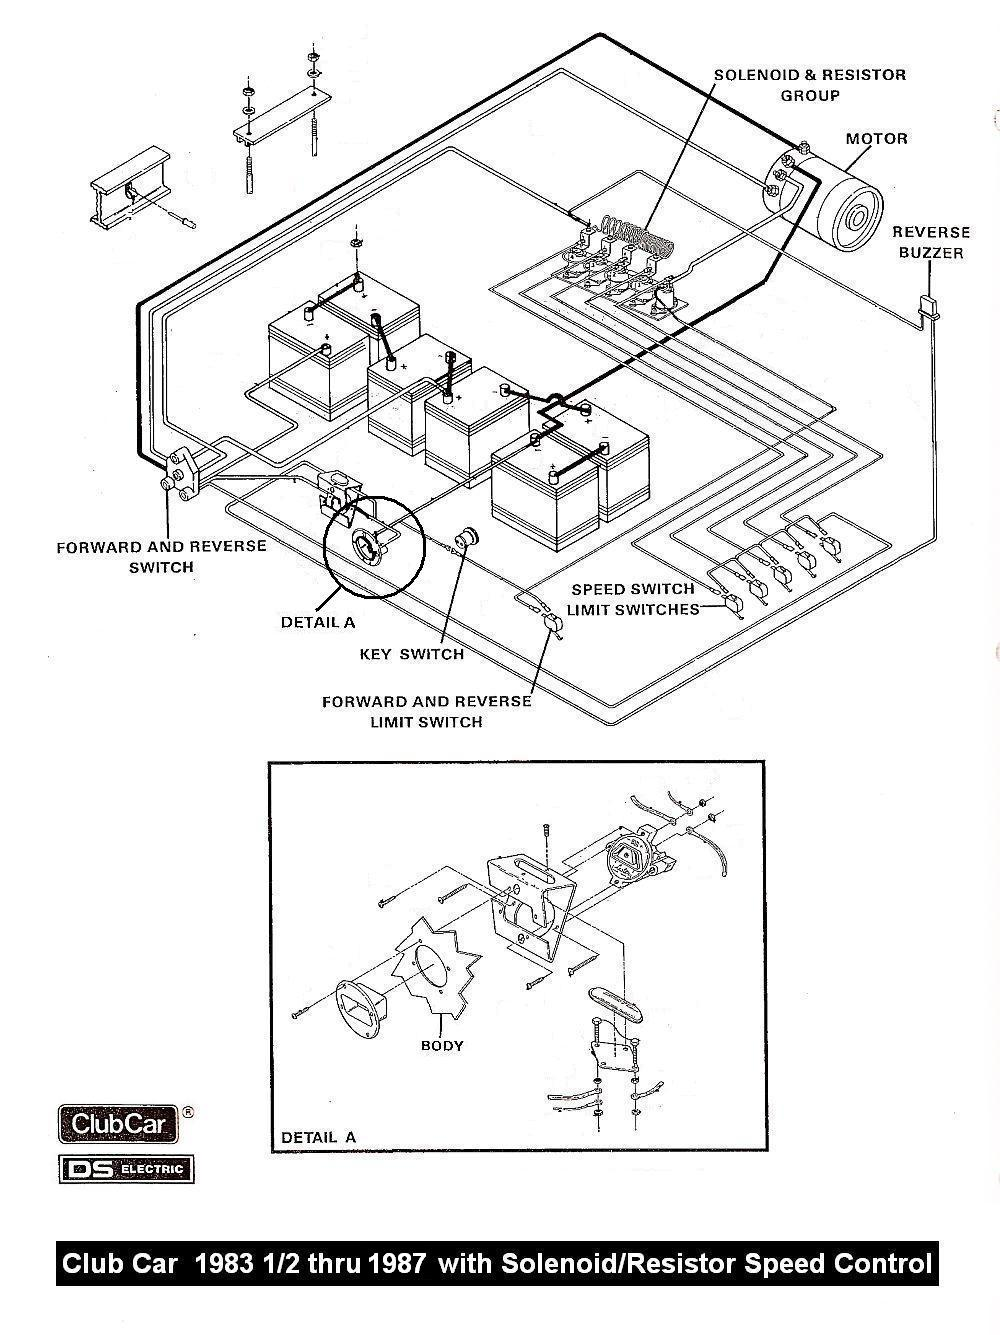 CC_83_87_solenoid_wiring vintagegolfcartparts com 2002 club car ds wiring diagram at bayanpartner.co